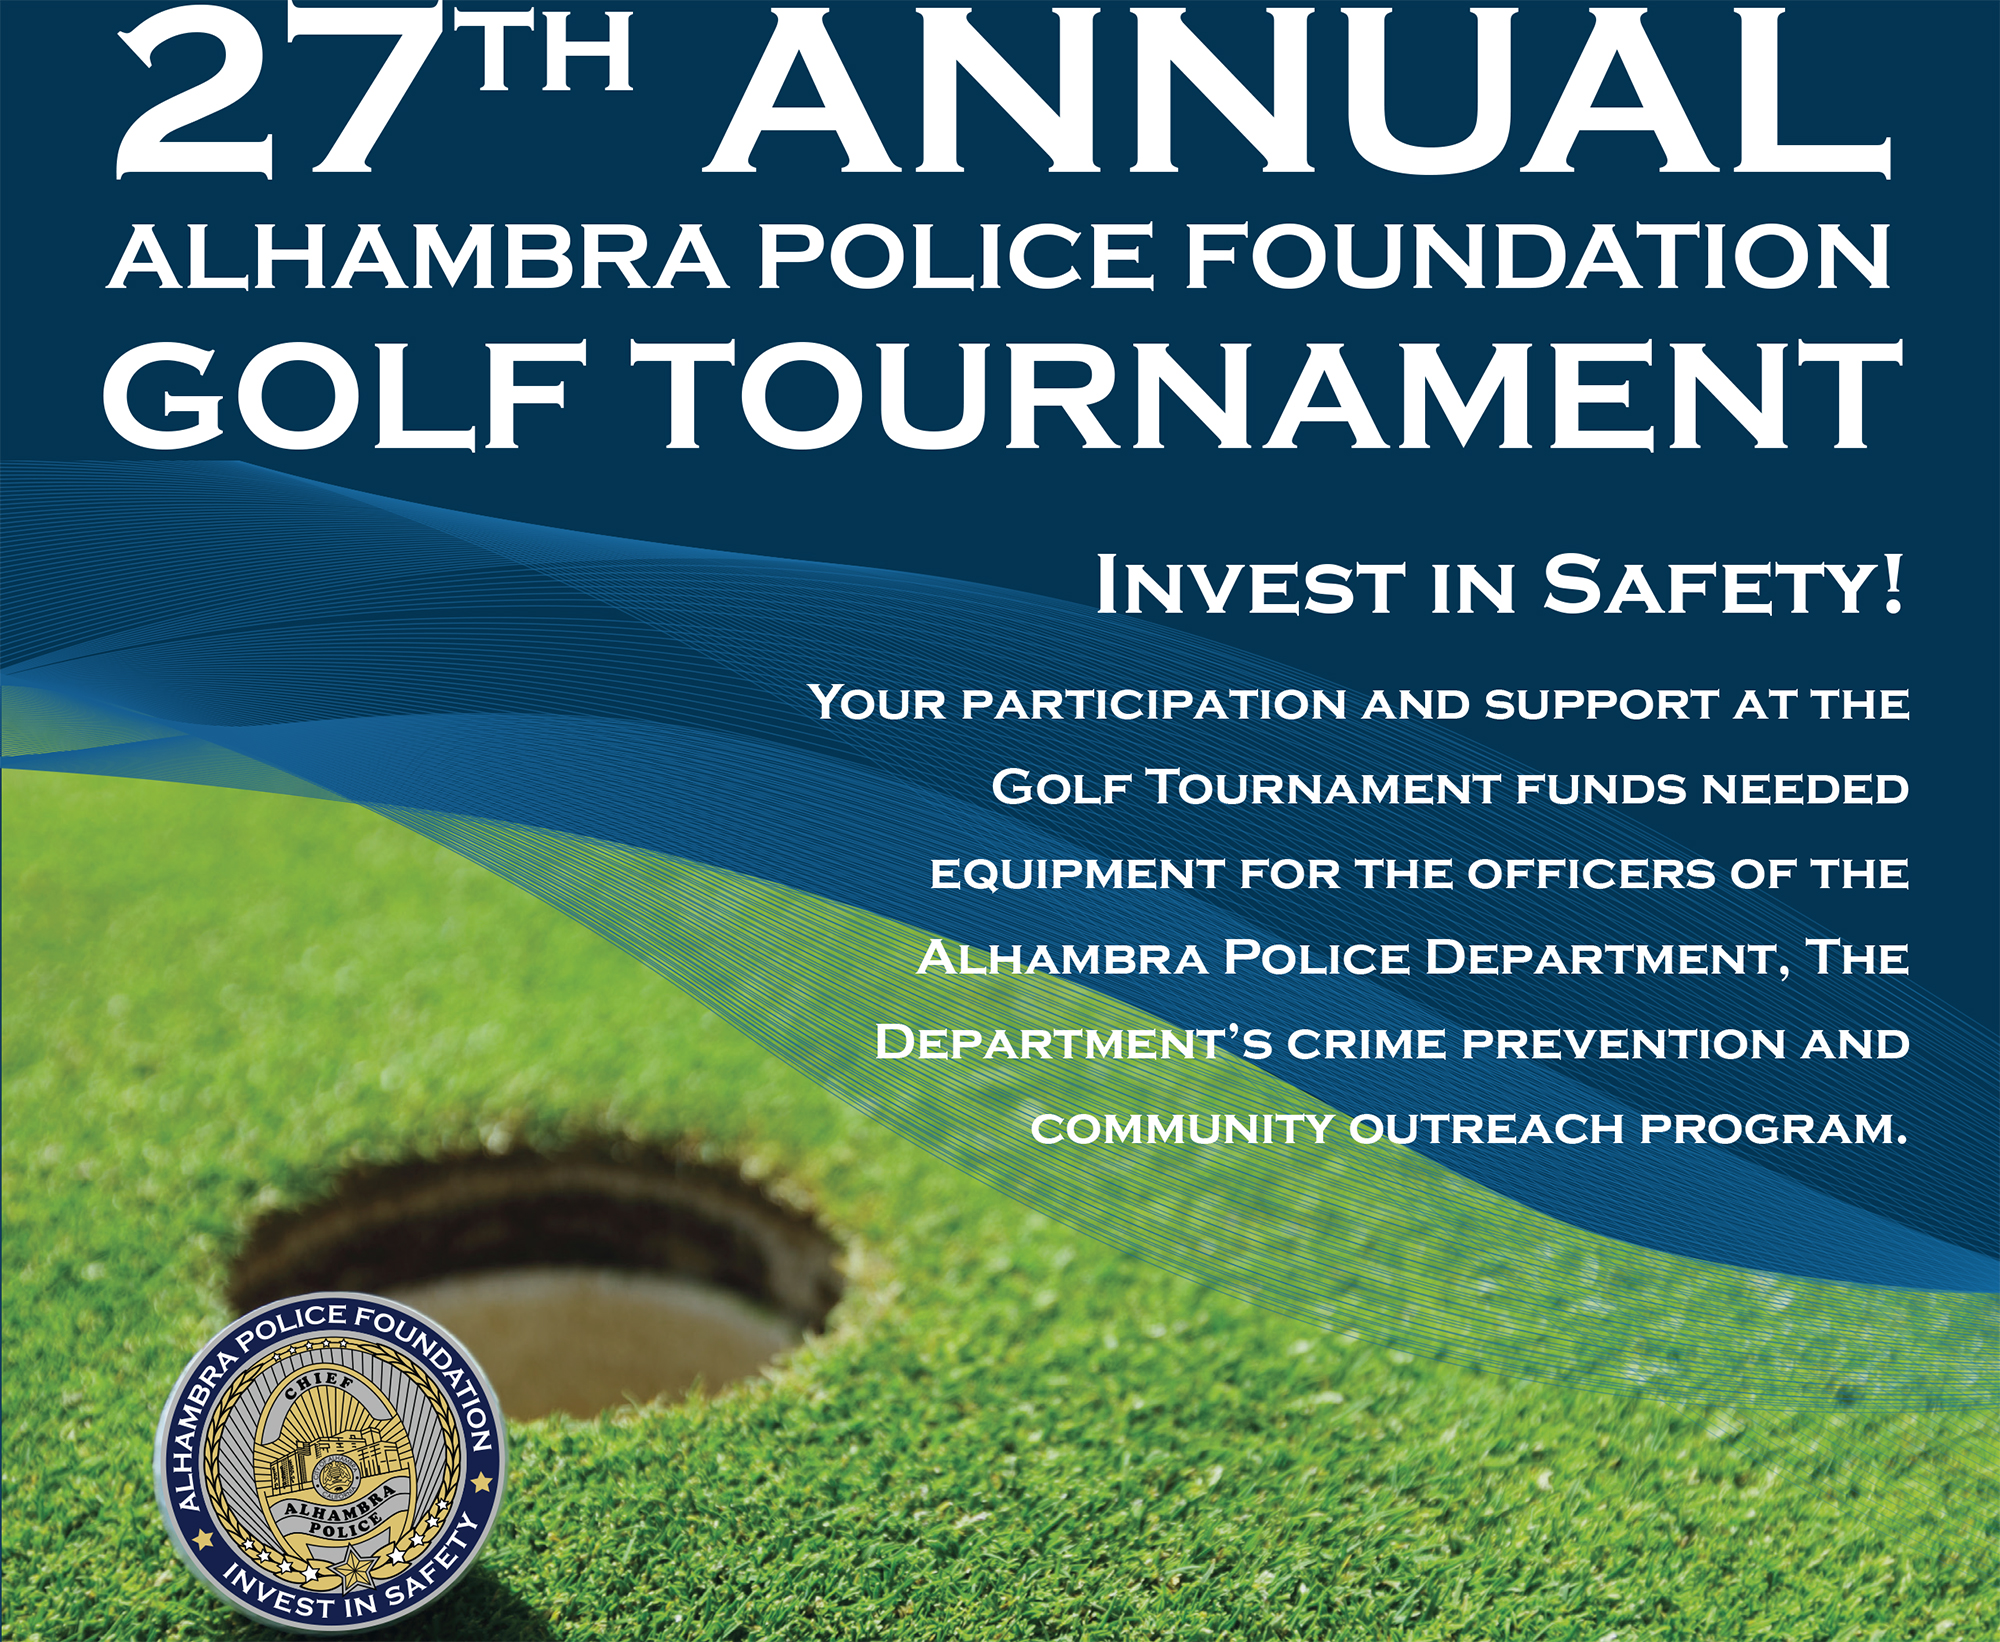 27th Annual Alhambra Police Foundation Golf Tournament